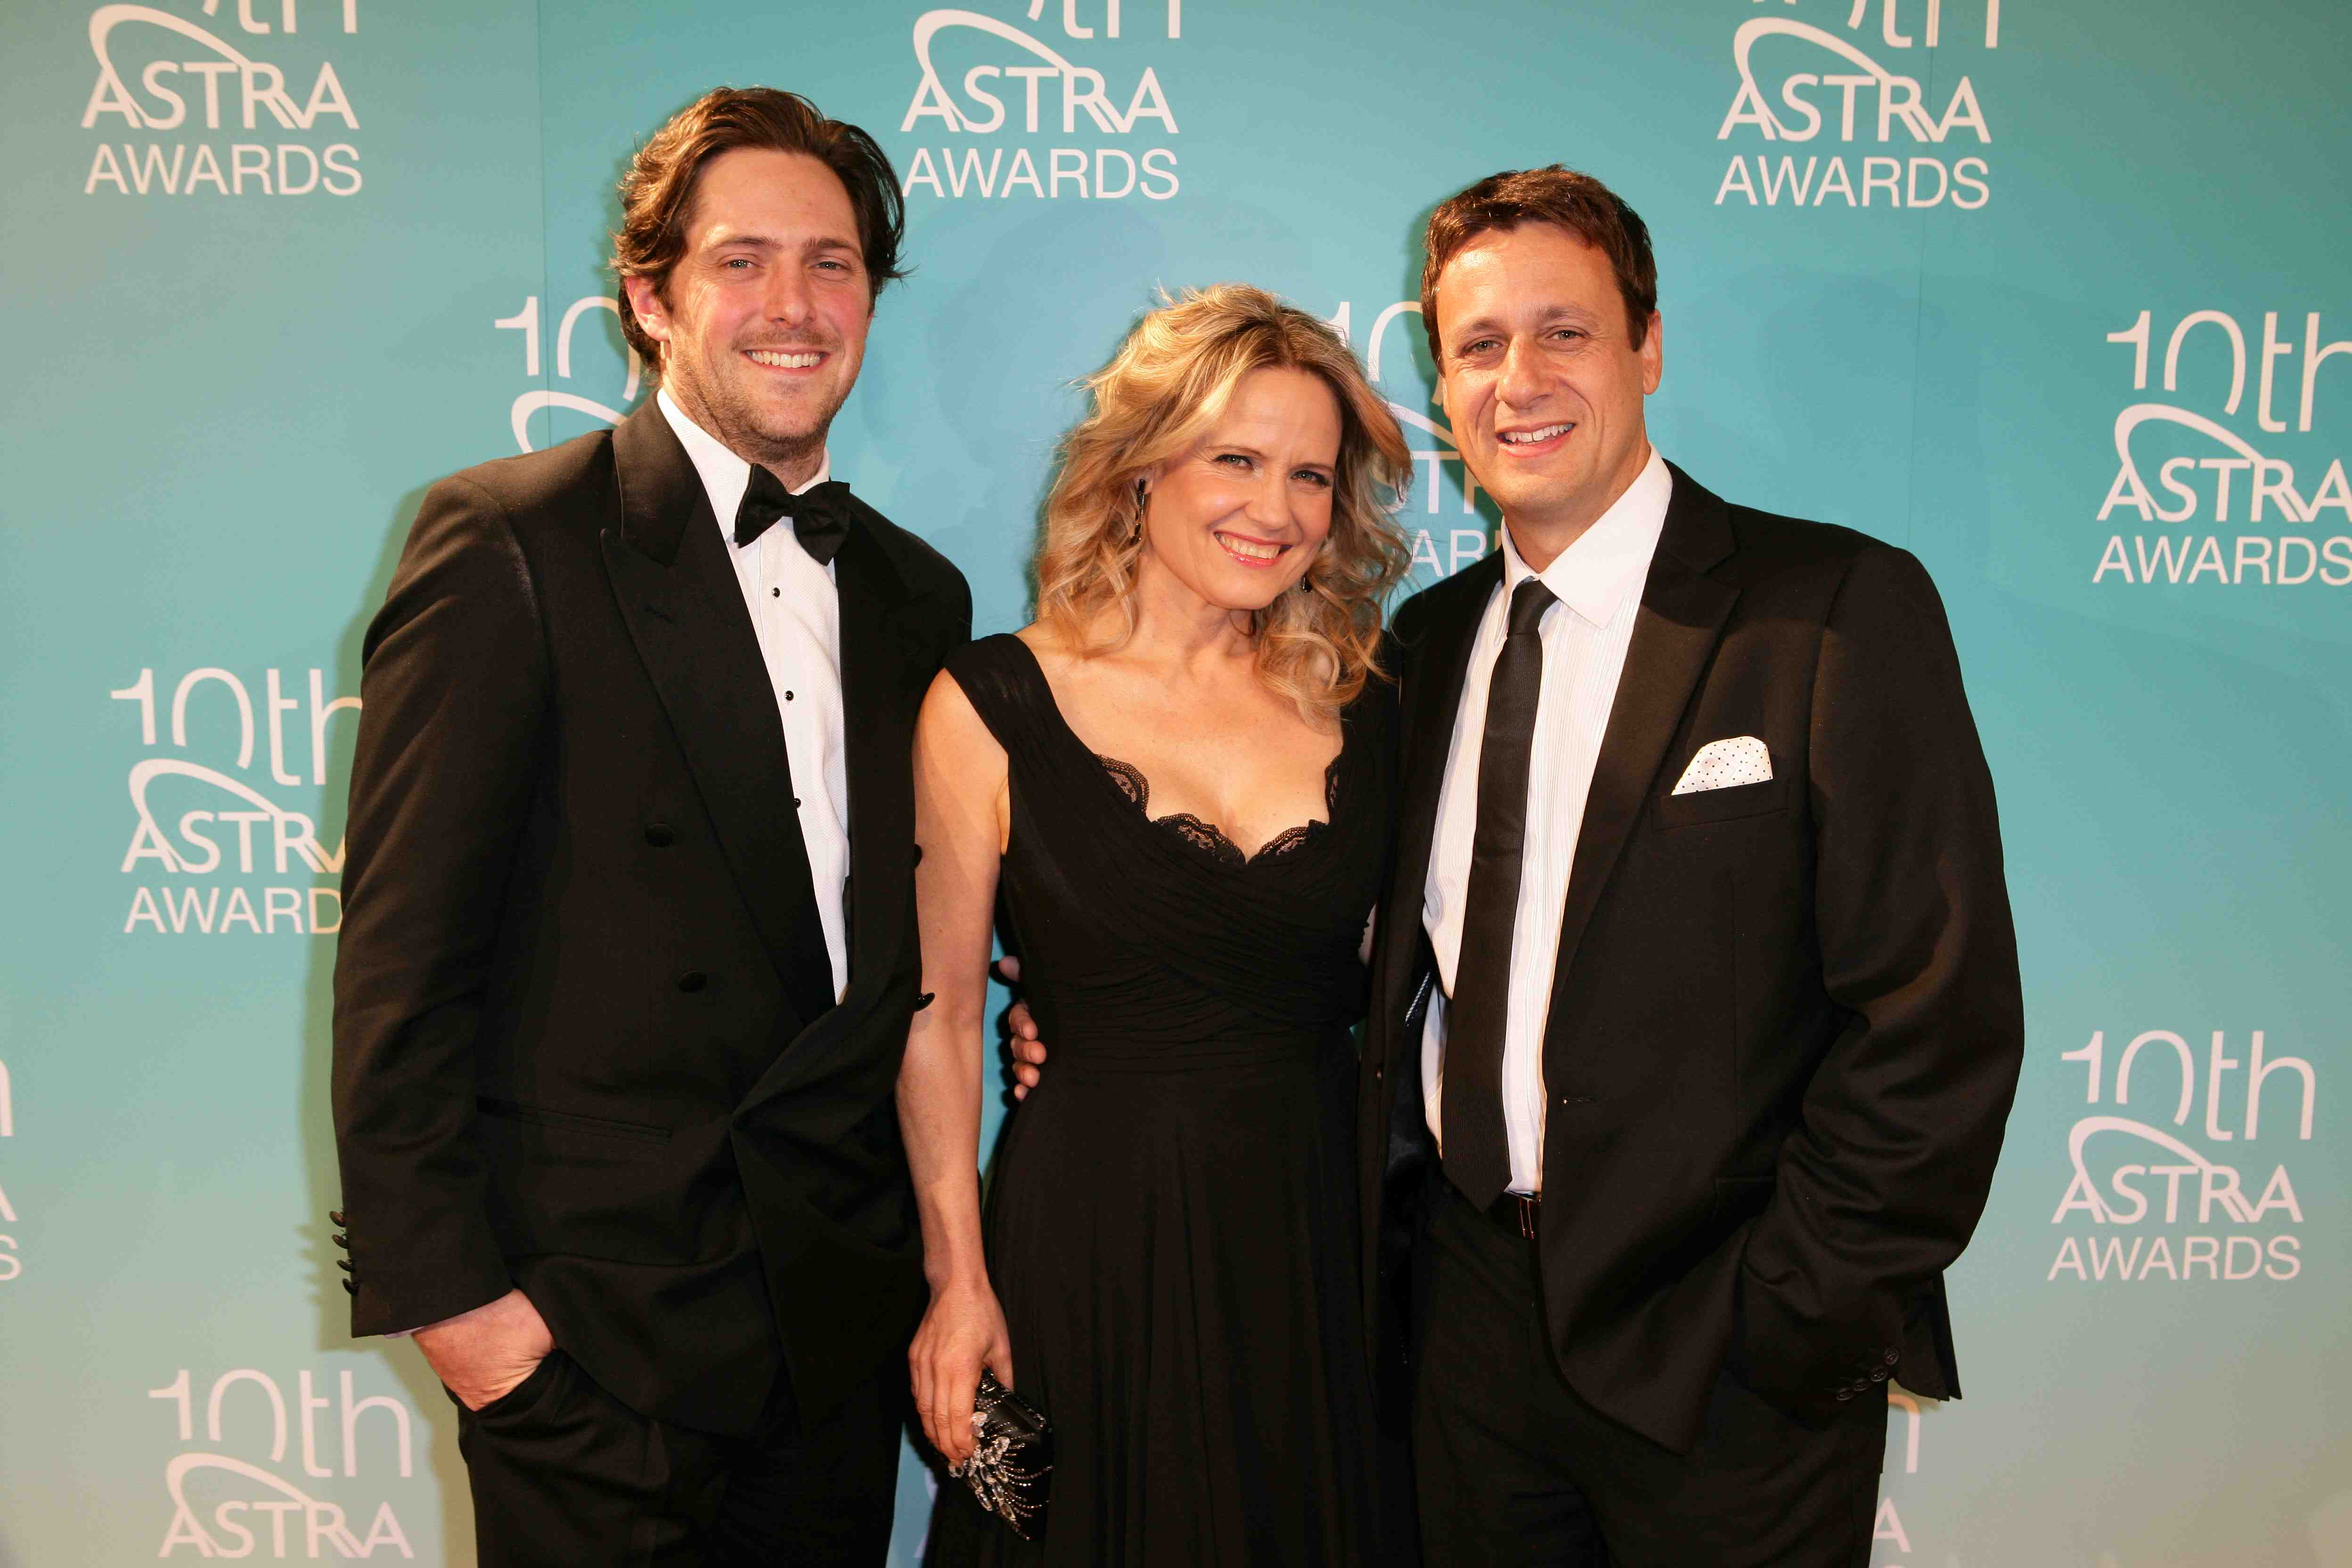 Charlie Albone, Shaynna Blaze and Andrew Winter (The LifeStyle Channel)